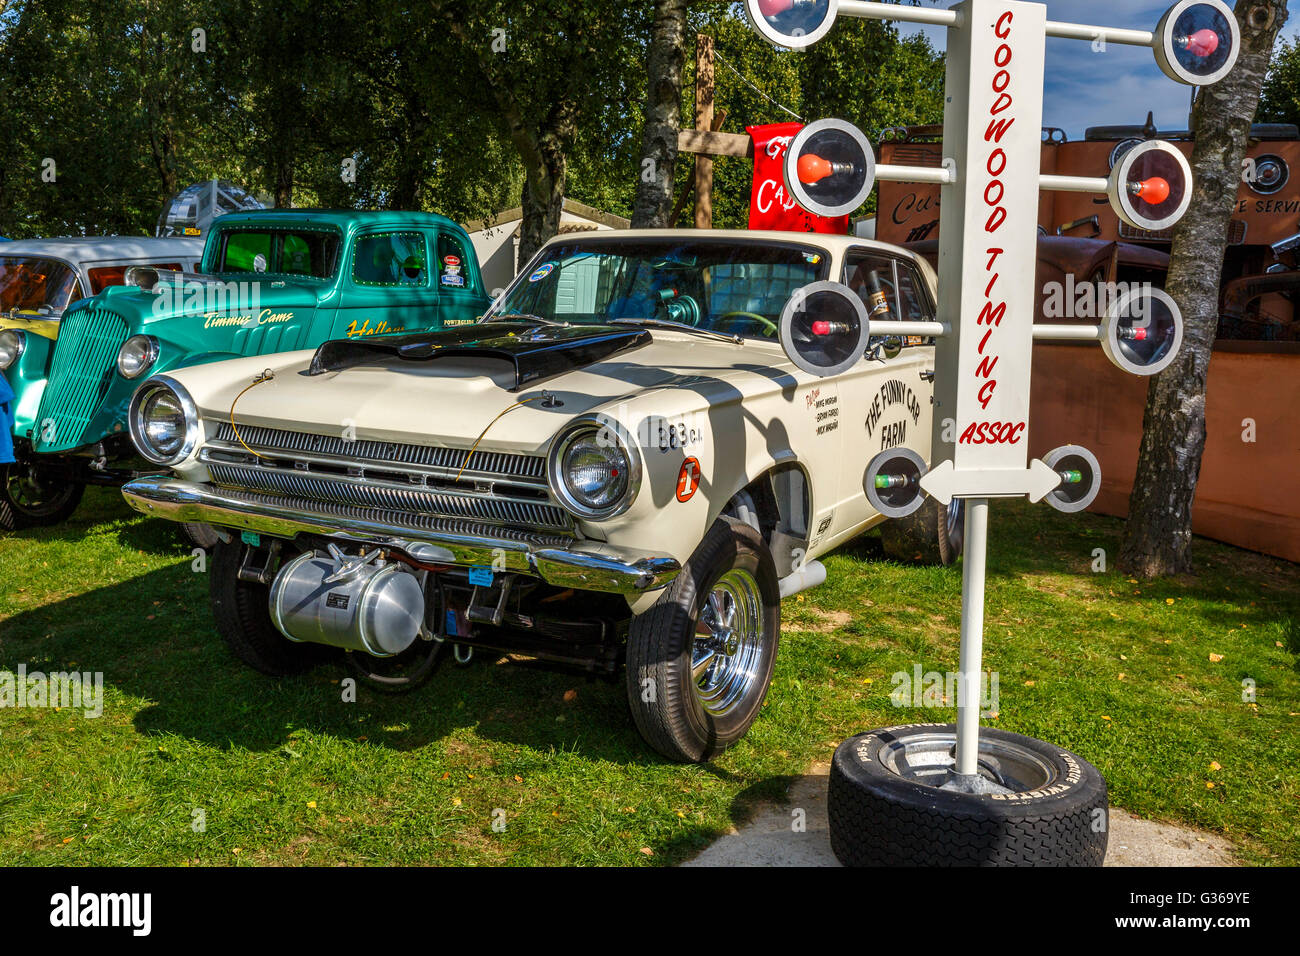 Dodge Dart Stock Photos Images Alamy 1964 Gts Identity Crises Gasser In The Paddock At 2015 Goodwood Revival